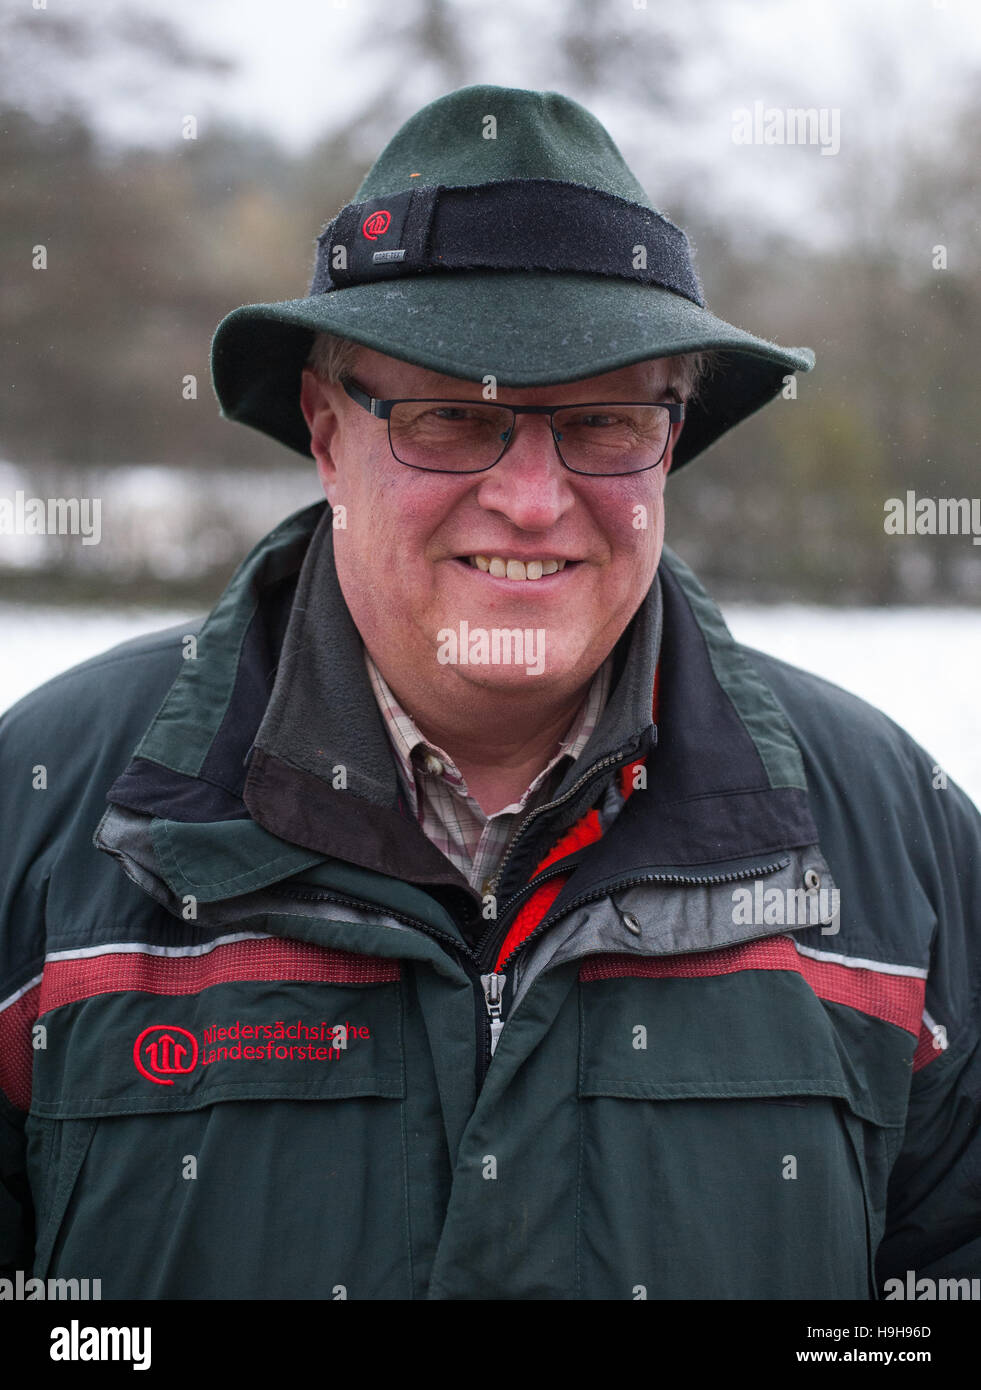 Goehrde, Germany. 15th Nov, 2016. Head of the forestry comission office Uwe Barge pictured near Goehrde, Germany, - Stock Image